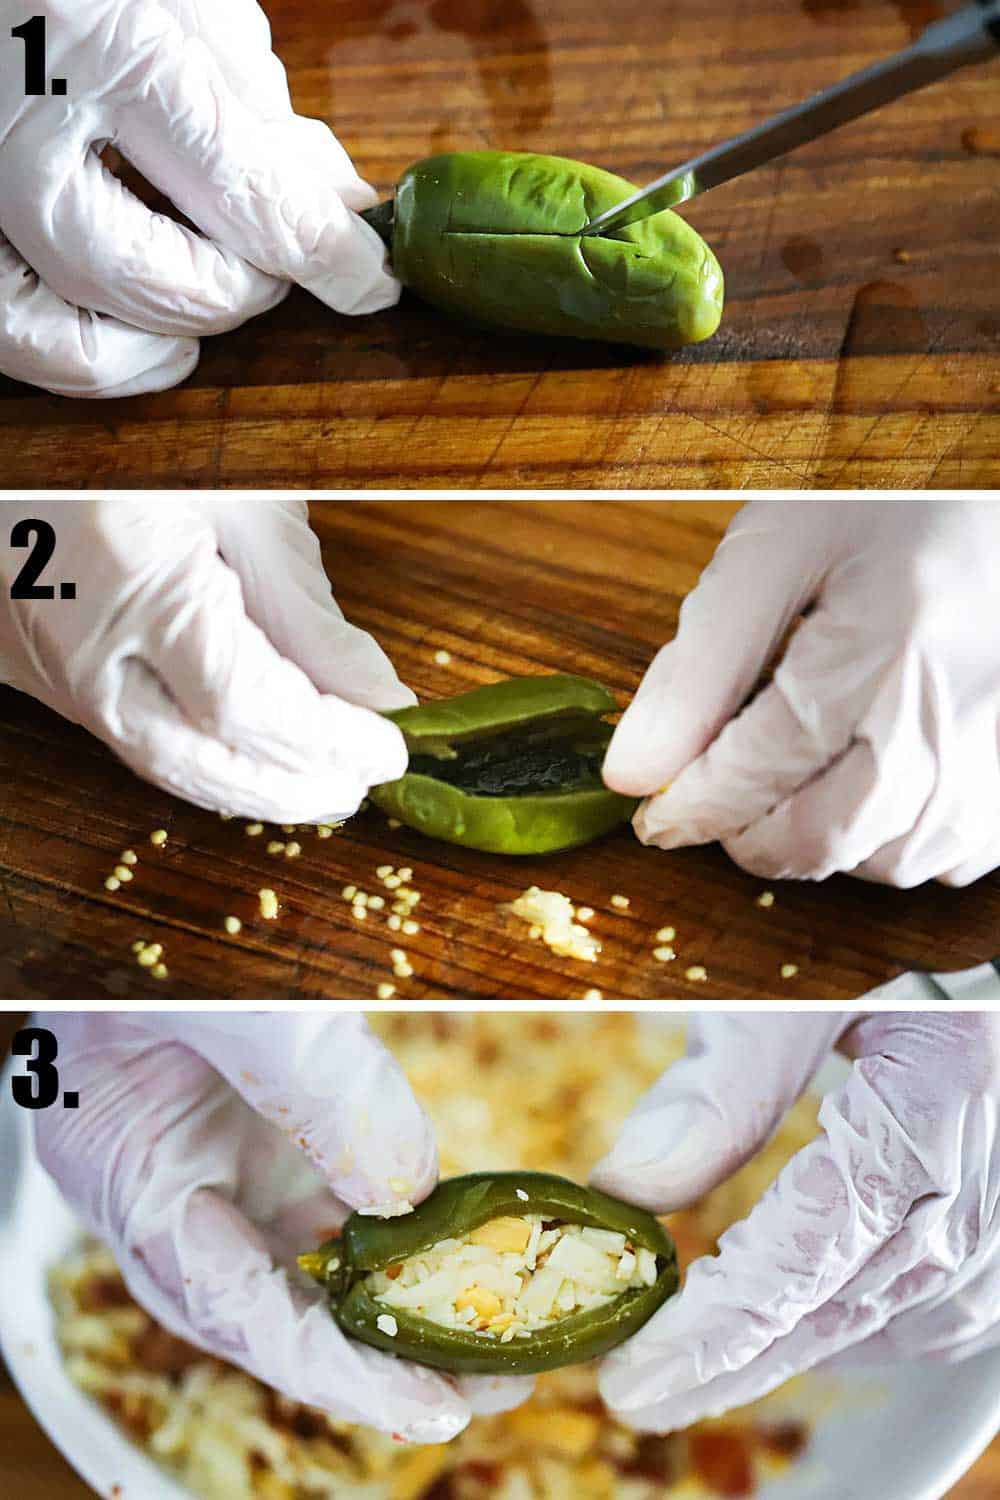 3 stacked images, top is a jalapeño being sliced lengthwise, next is removing the seeds, next is it stuffed with cheese.